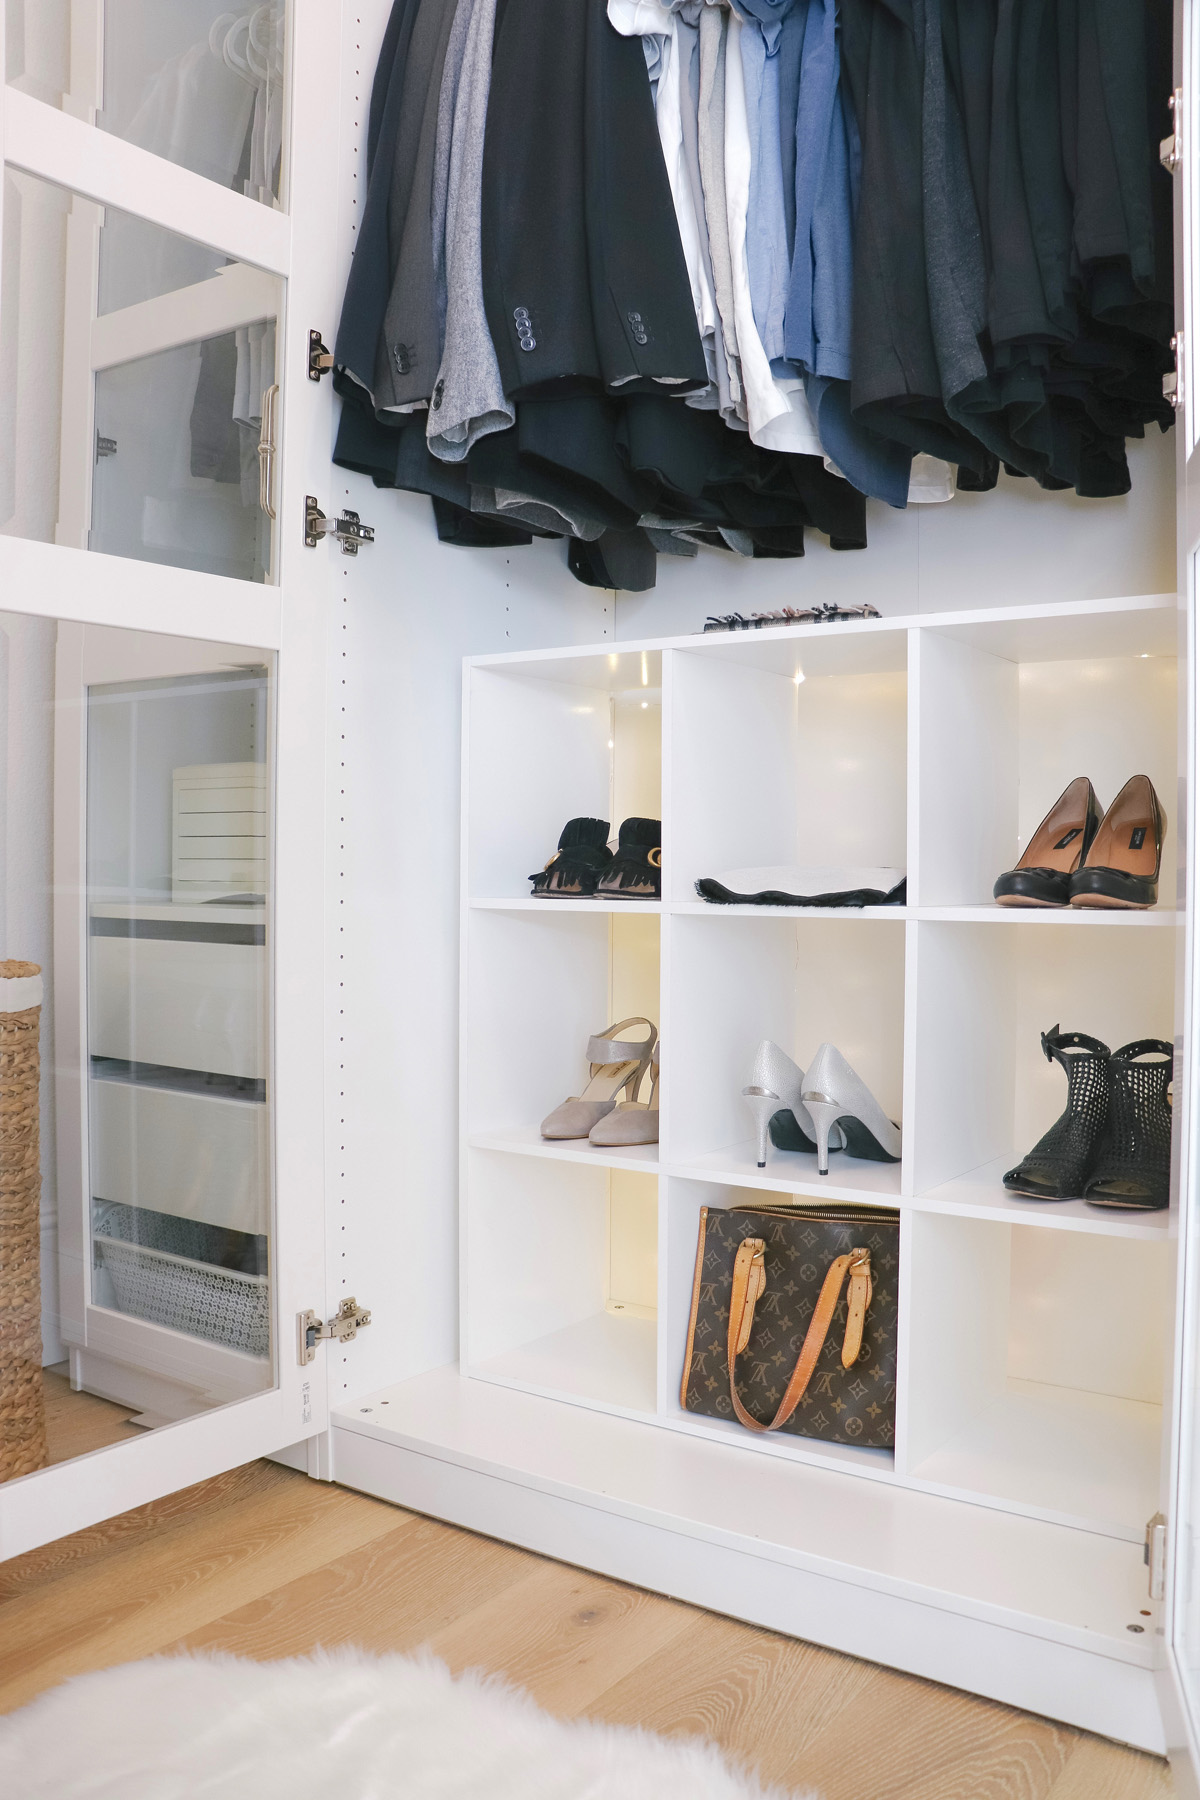 5 Easy Ways to Organize and Beautify your Closet || Best tips and tricks on how to tidy up your home! Kristy Wicks